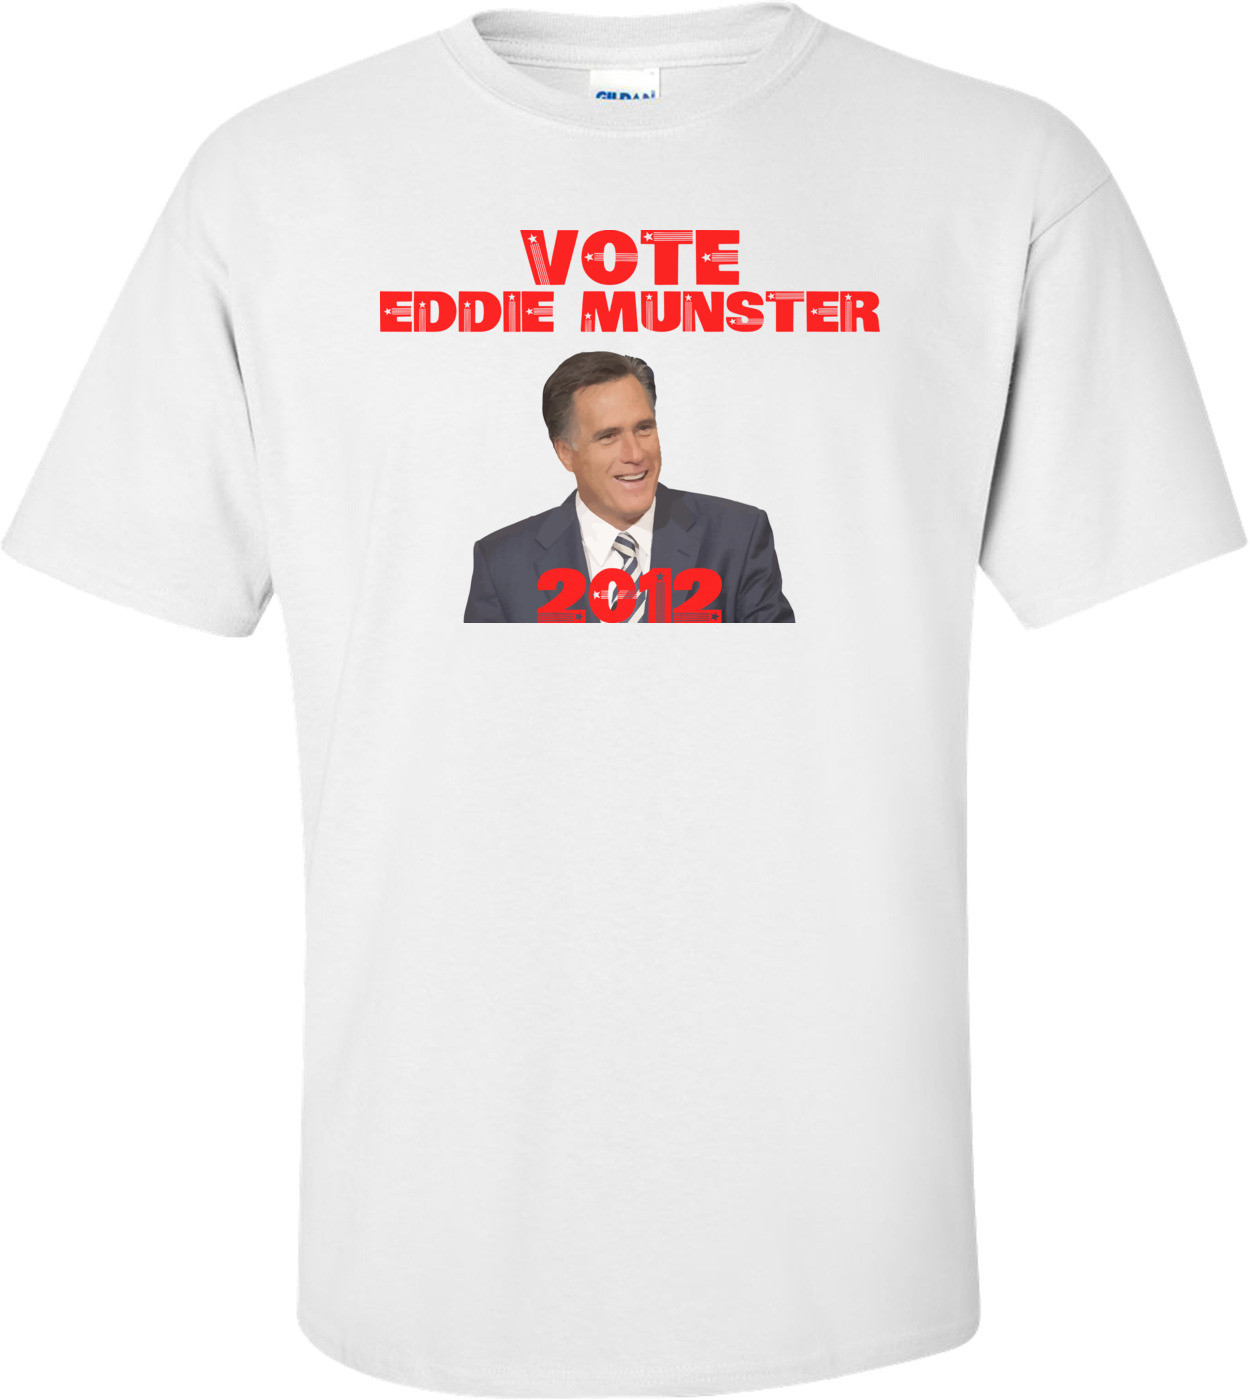 Vote Eddie Munster - Anti Mitt Romney Shirt